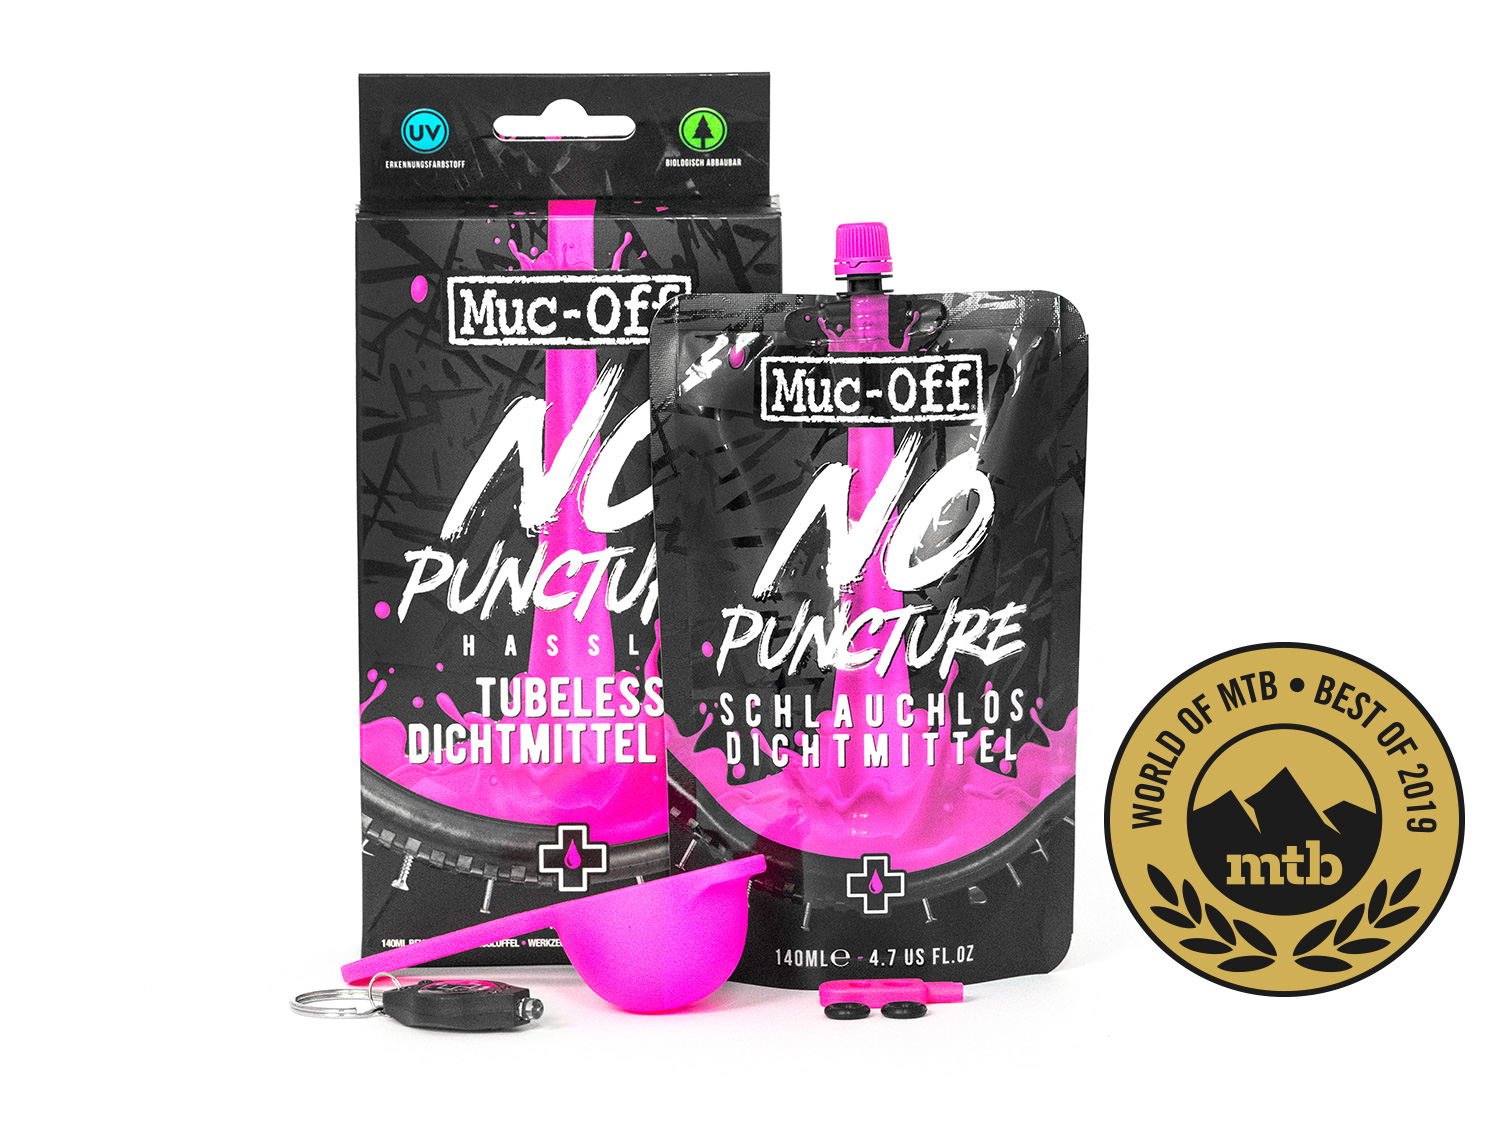 Muc-Off Tubeless Dichtmittel 140ml KIT